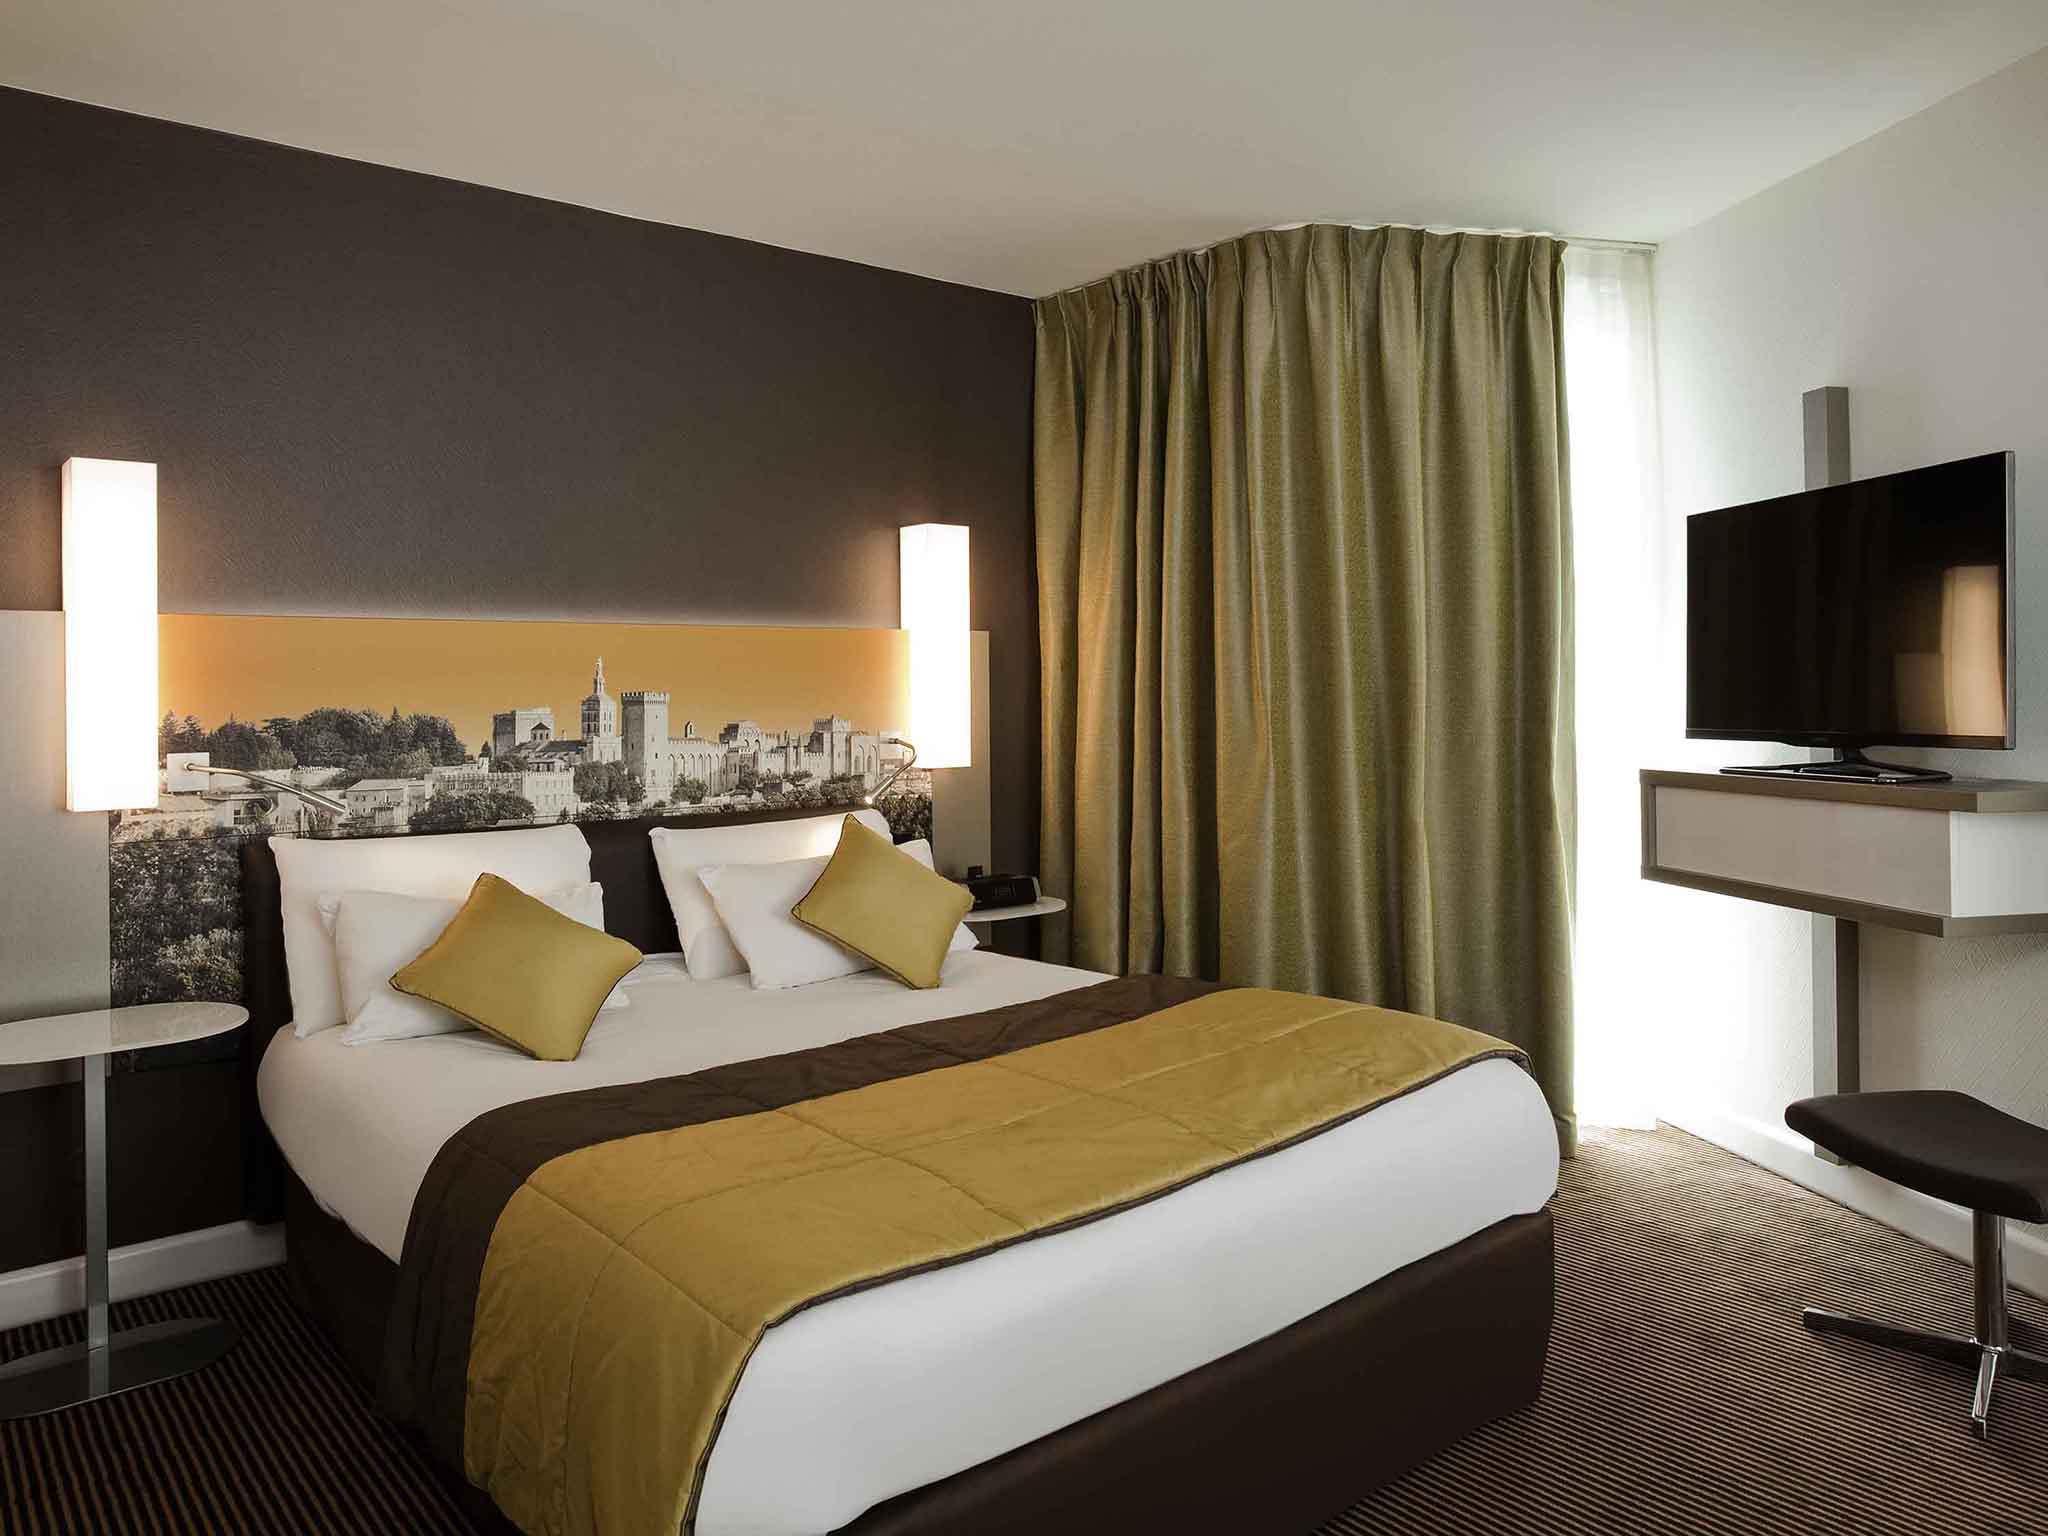 Mercure Papes zimmer